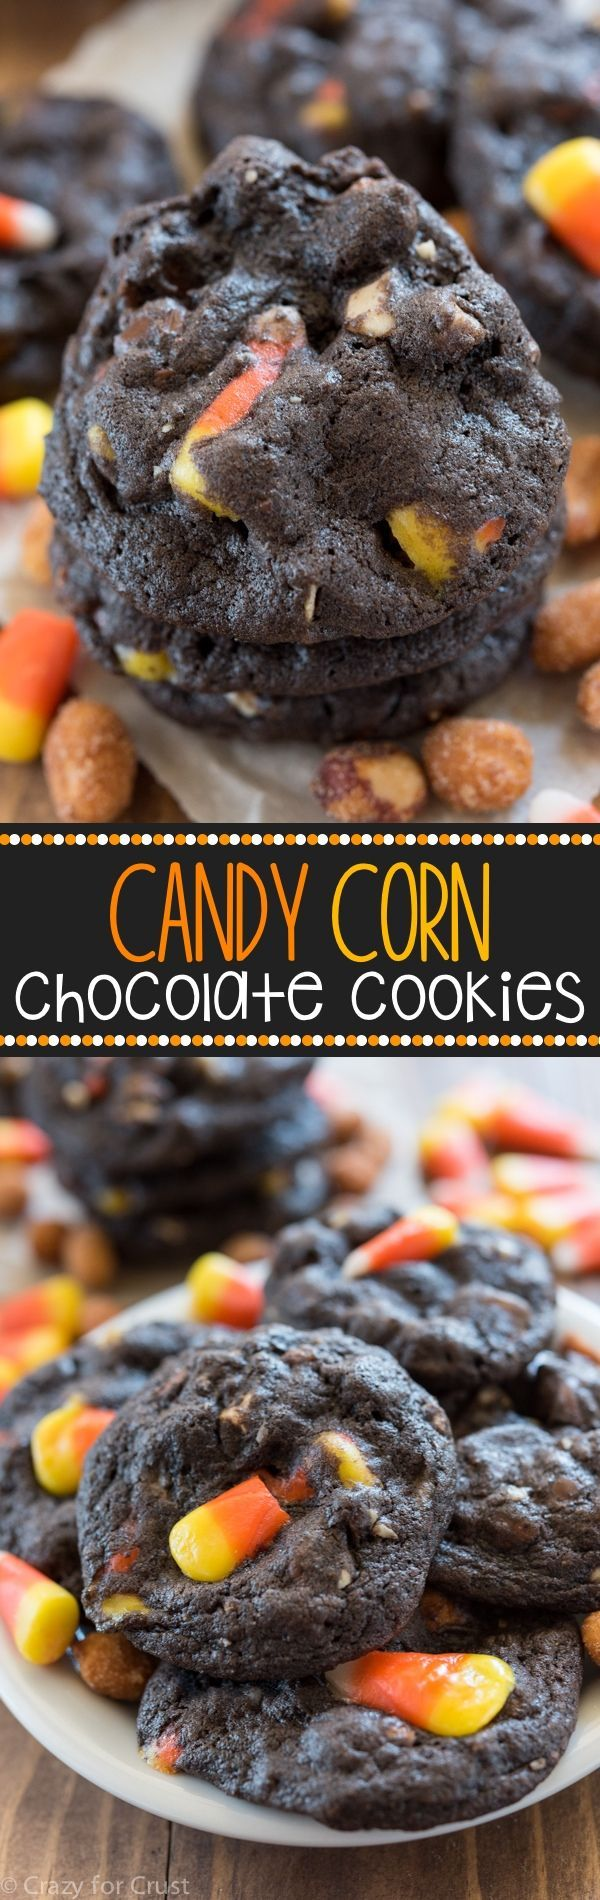 Chocolate Candy Corn Cookies - these soft and easy chocolate cookies are filled…